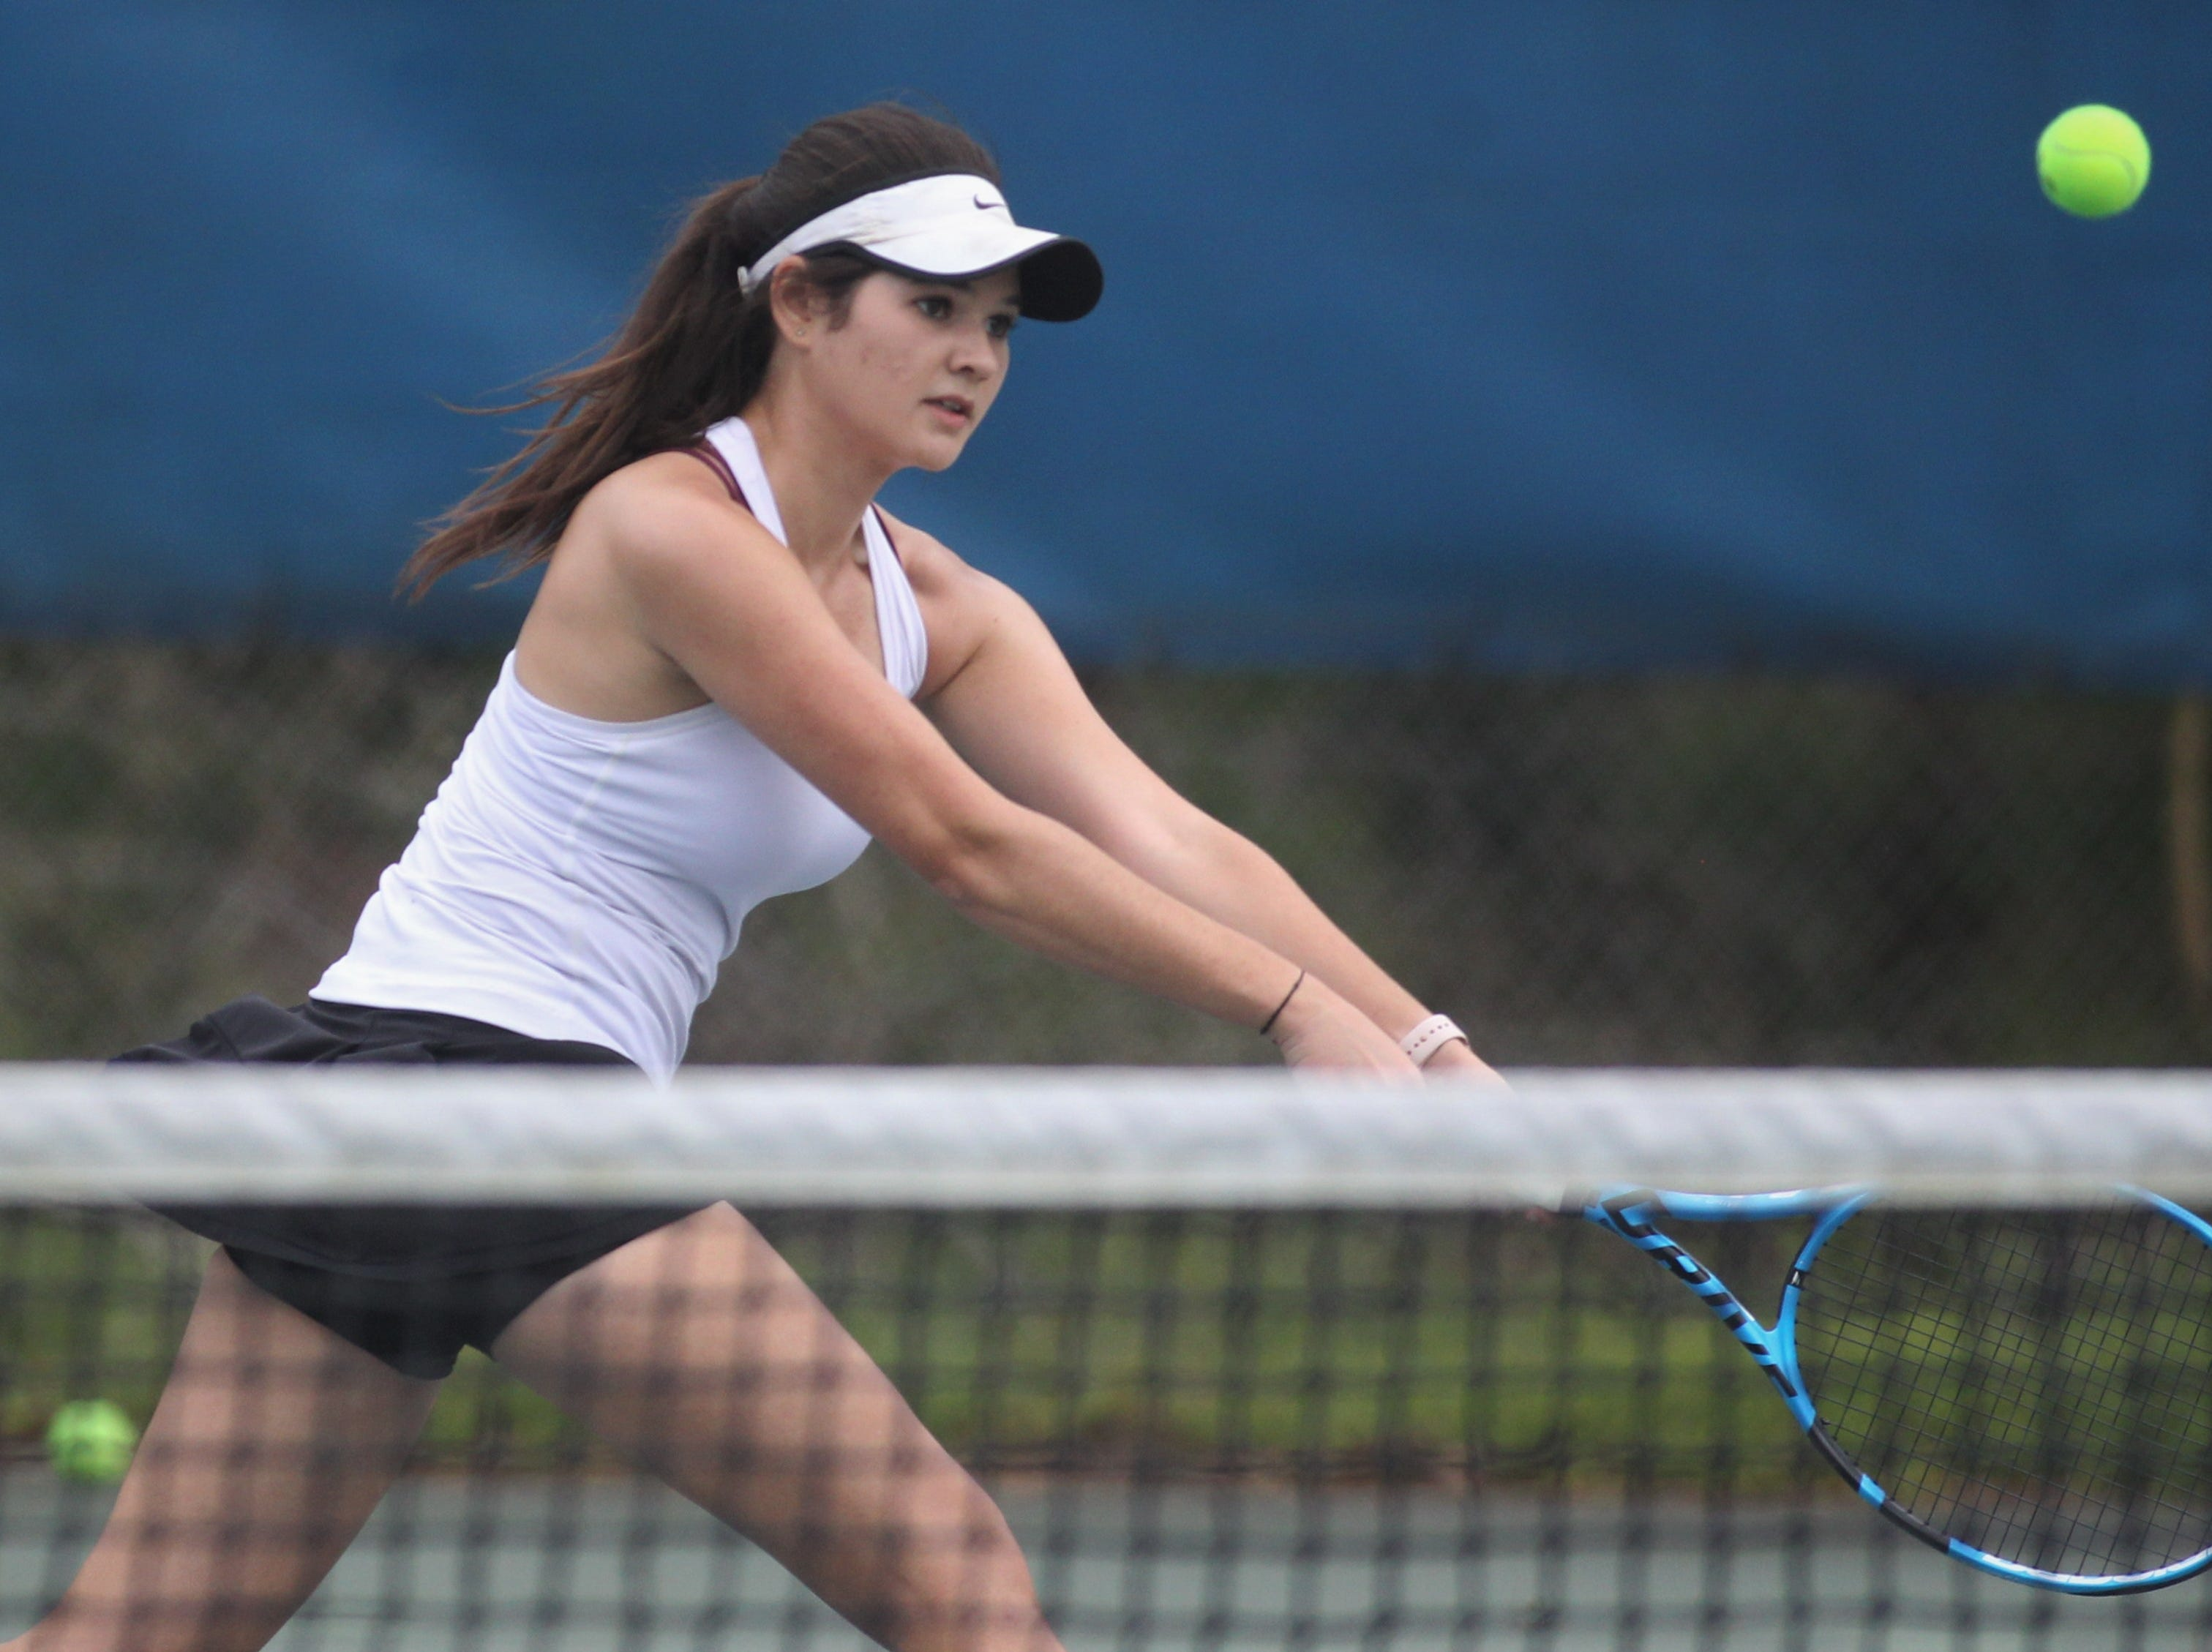 Chiles senior Gracie Wilson plays during the high school boys and girls city tennis tournament at Tom Brown Park on Thursday, March 14, 2019.